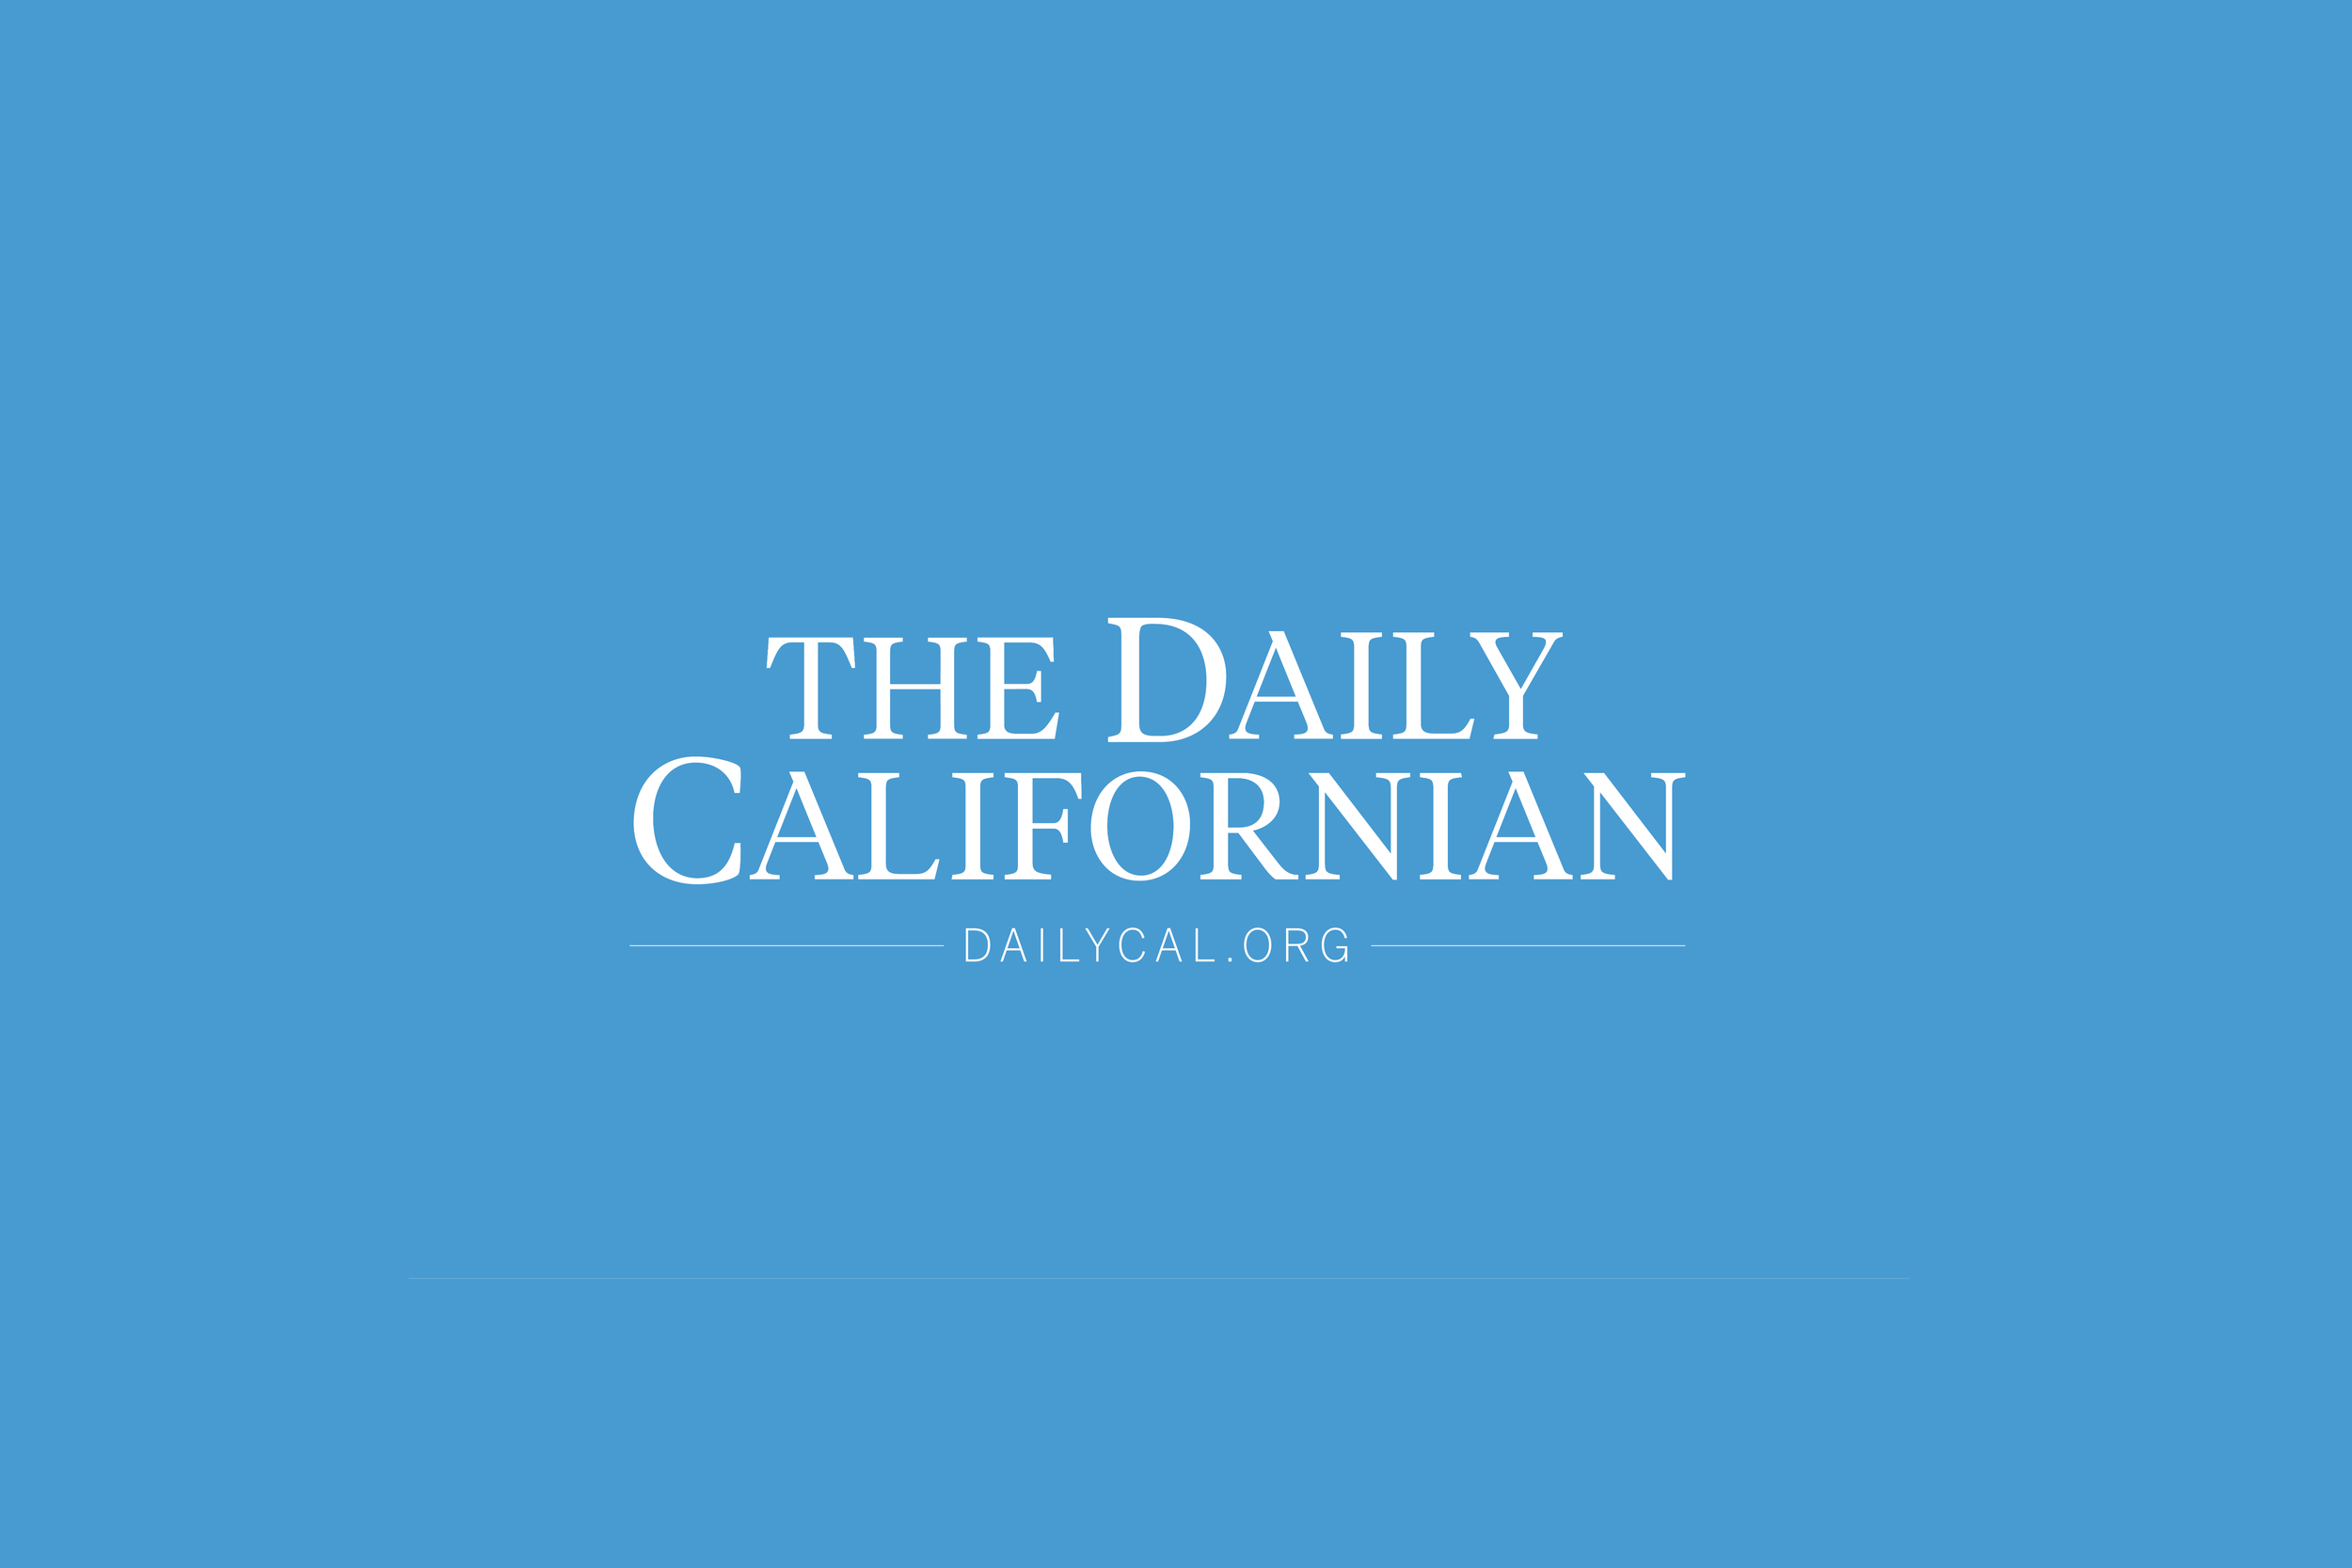 UC system suspends glyphosate herbicide use in light of student campaign - UC Berkeley alumna and former Cal beach volleyball player Mackenzie Feldman and her former teammate and campus senior Bridget Gustafson spoke out against the use of glyphosate-based herbicides on campus in fall 2017.